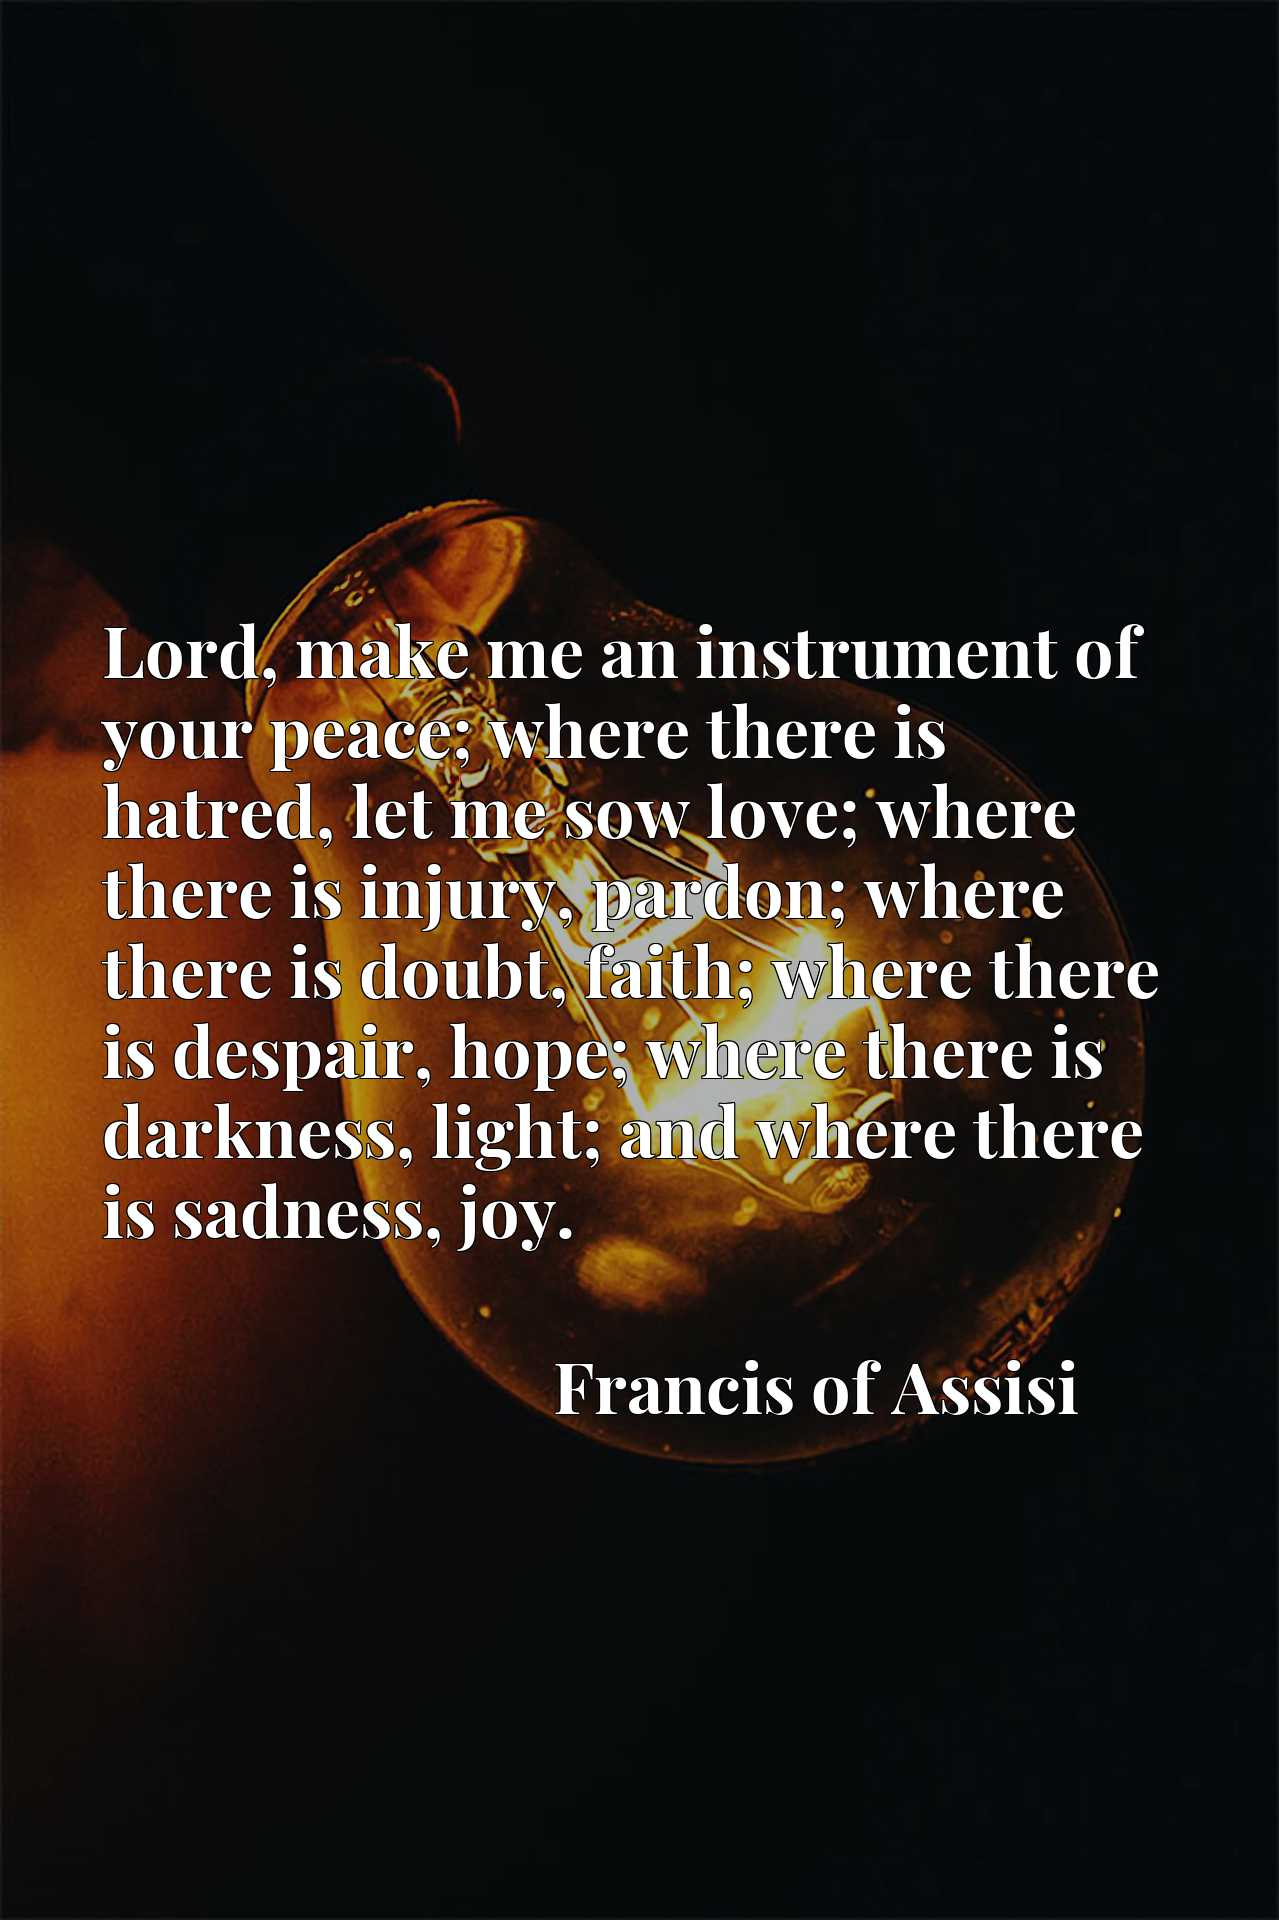 Lord, make me an instrument of your peace; where there is hatred, let me sow love; where there is injury, pardon; where there is doubt, faith; where there is despair, hope; where there is darkness, light; and where there is sadness, joy.